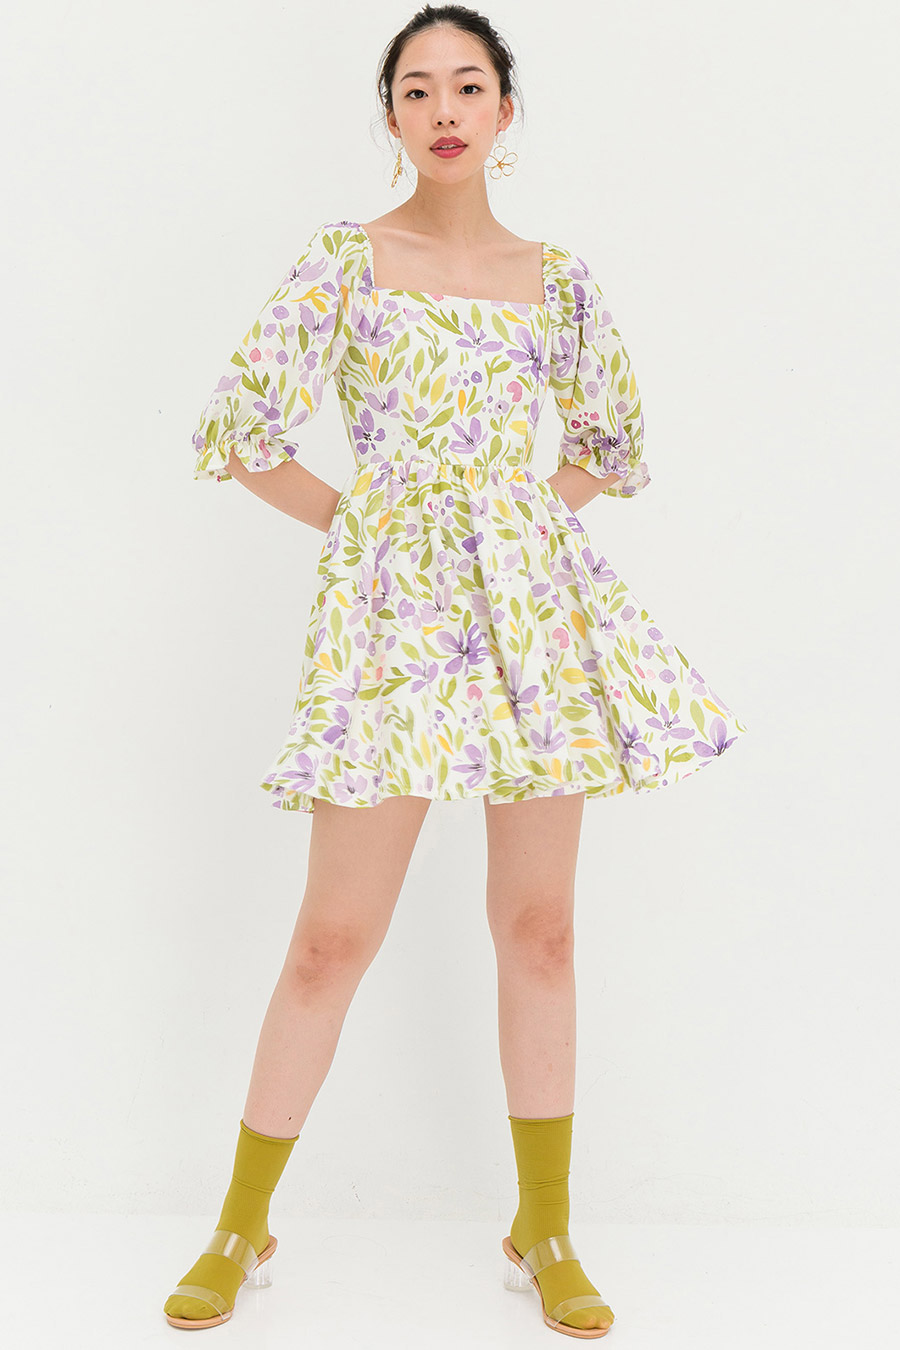 *BO* LAURA DRESS - SWEET PEA [BY MODPARADE]